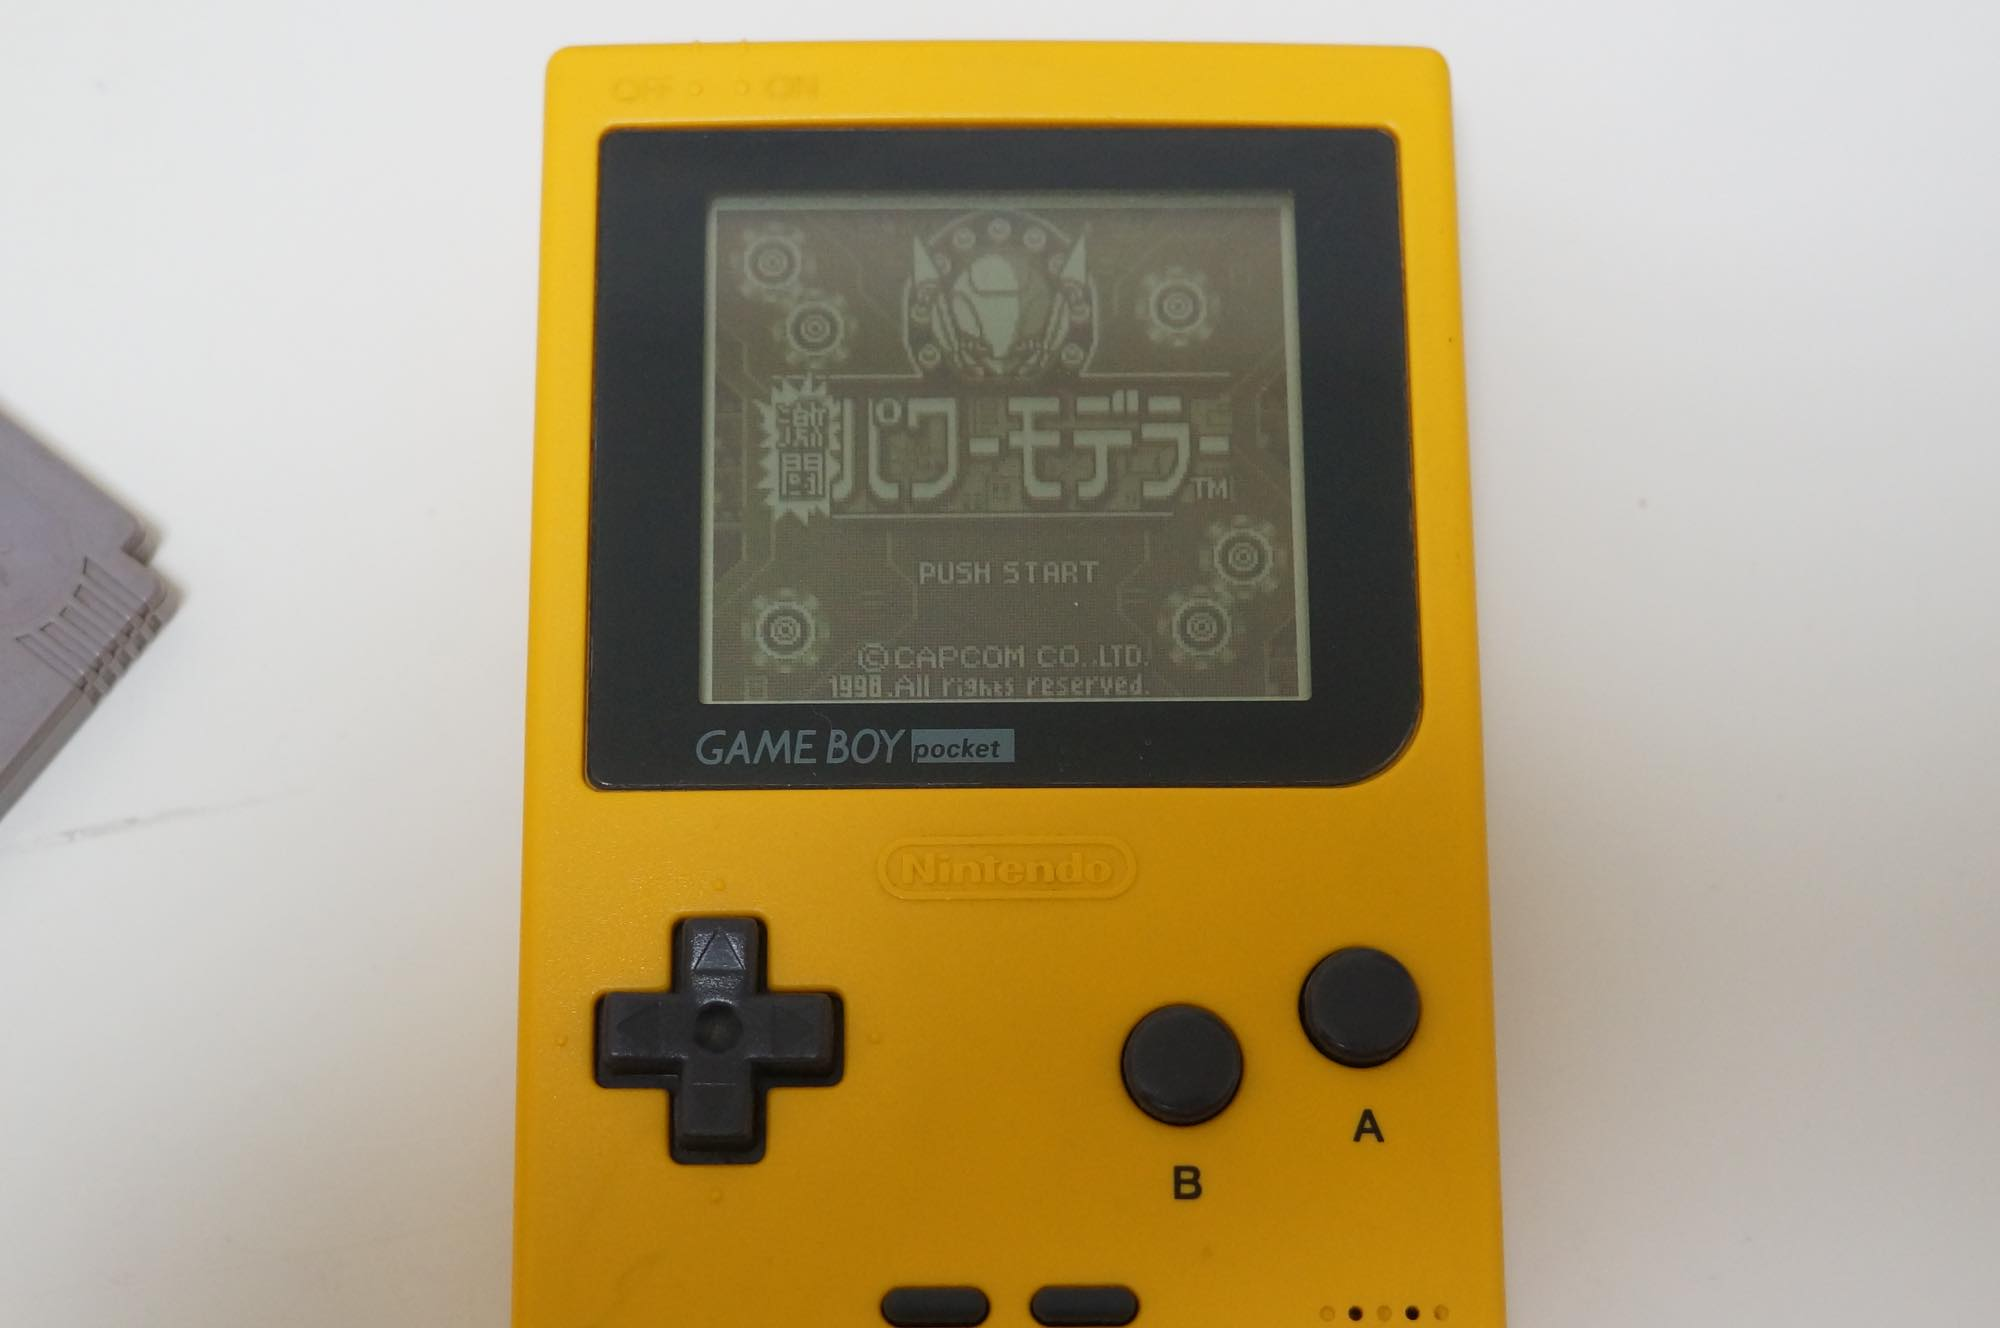 gameboy-pocket2